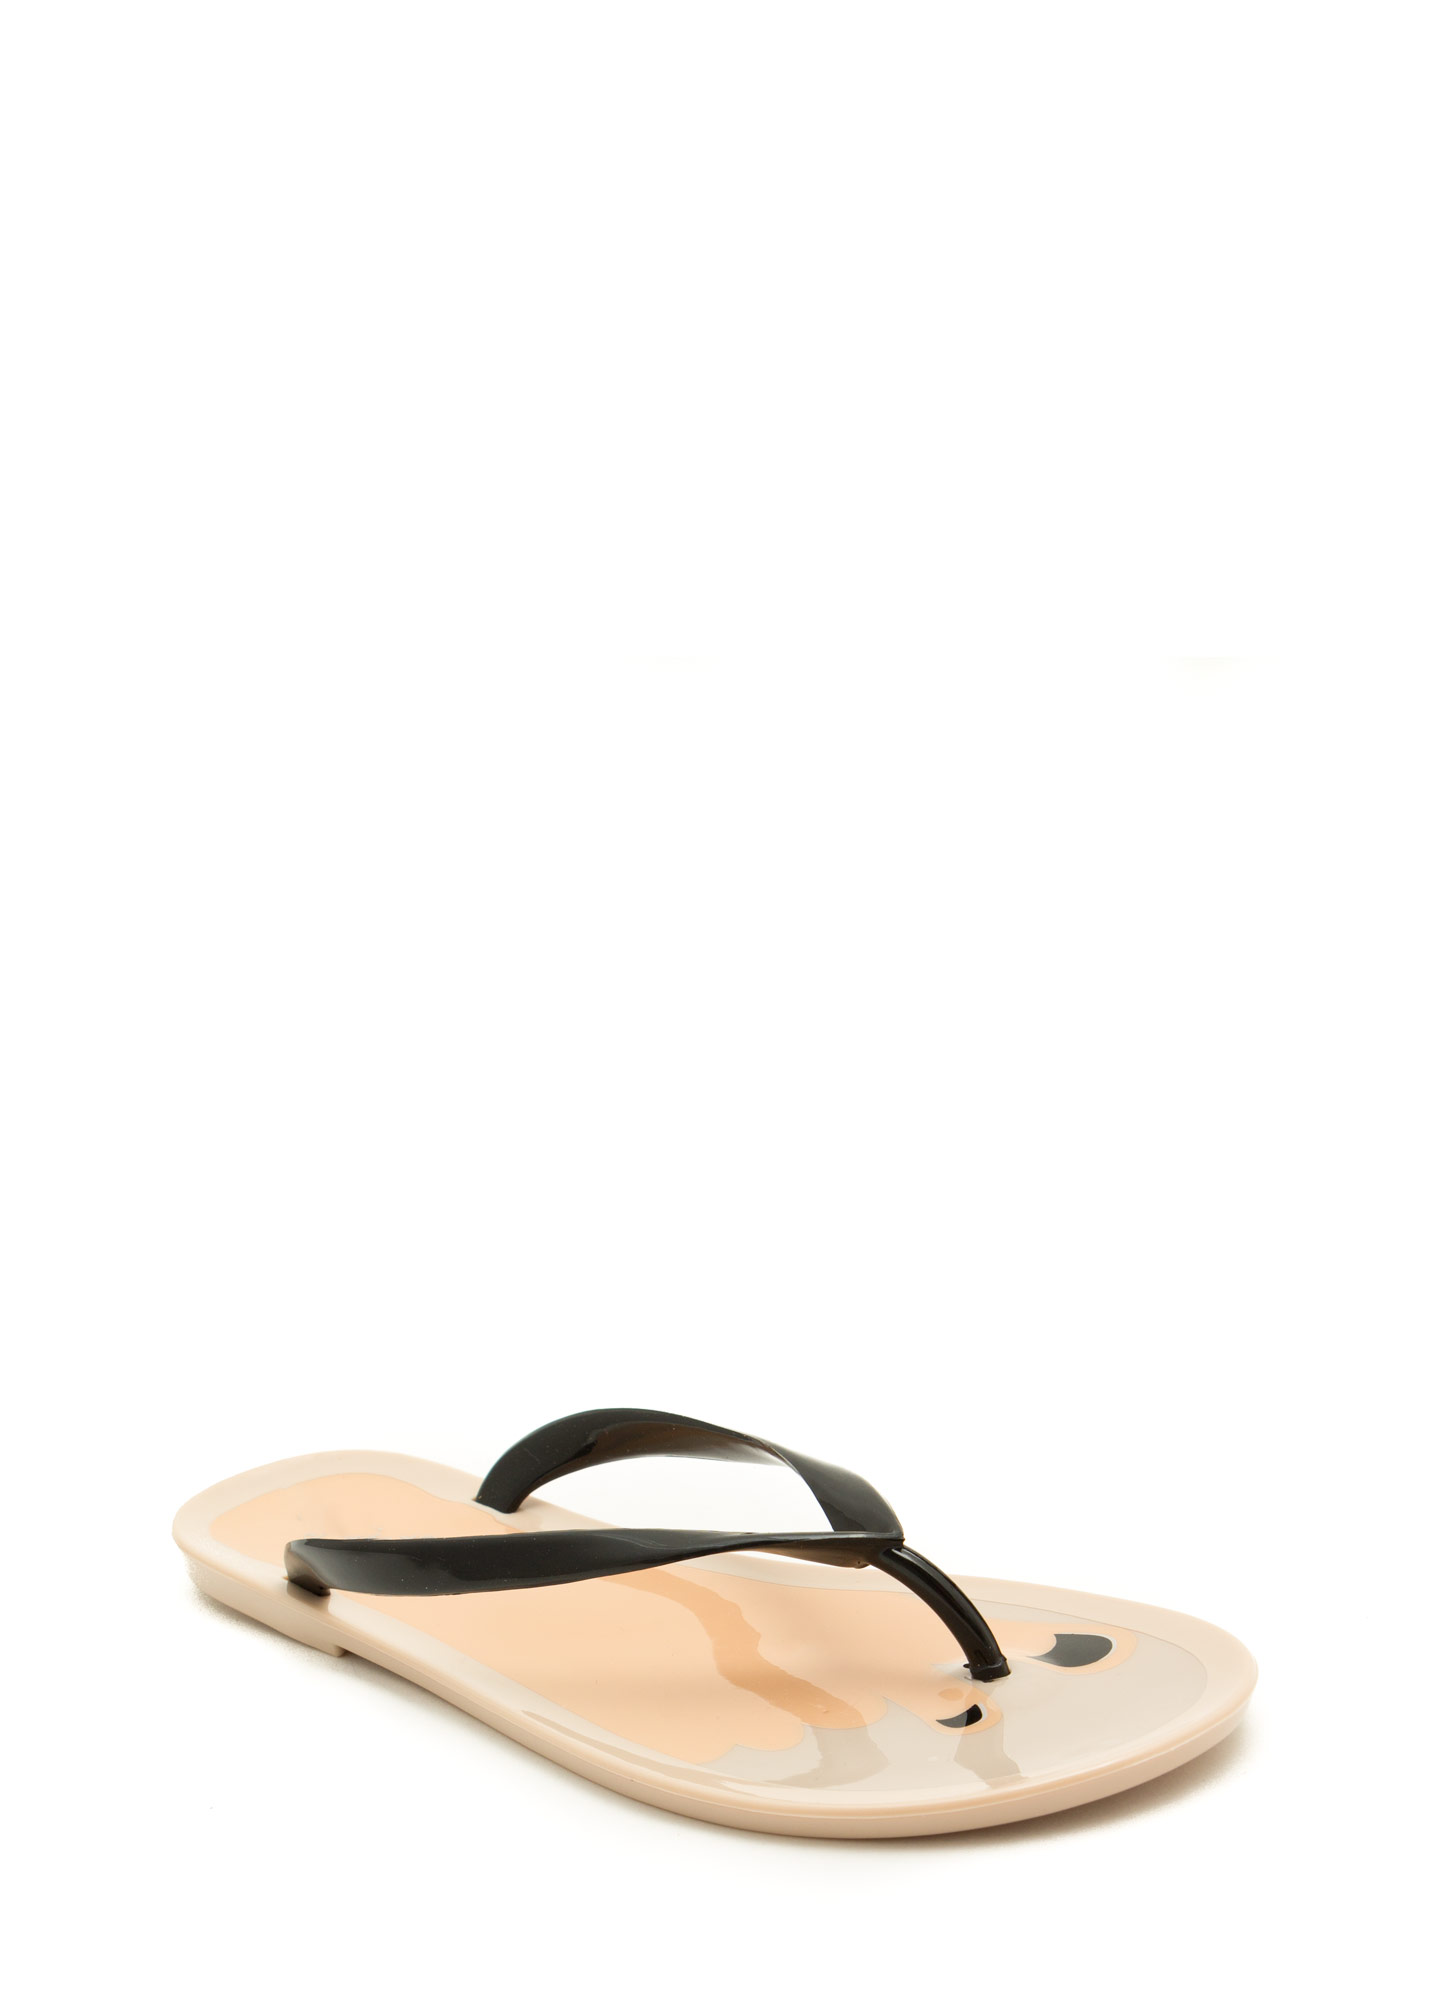 Jump In With Both Feet Thong Sandals BLACK